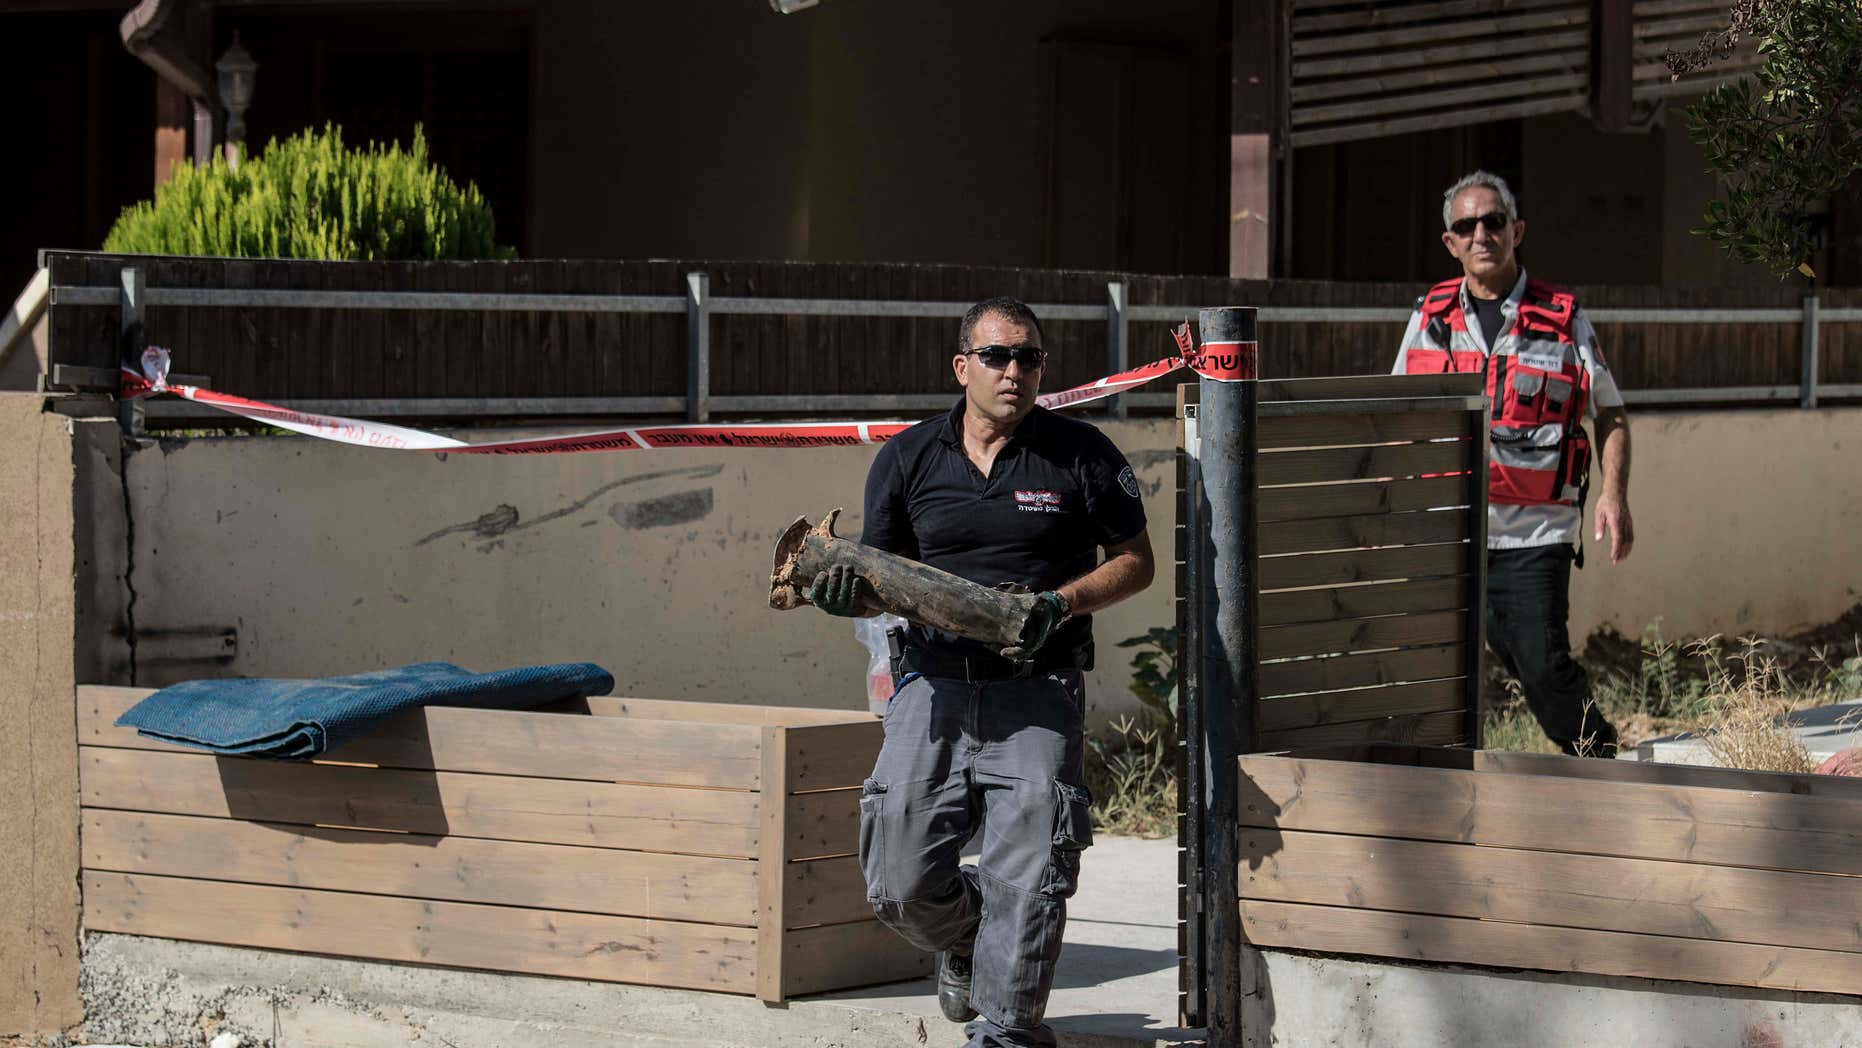 Aug. 21, 2016: An Israeli police sapper carries part of a rocket which landed in a yard of a house in the city of Sderot, southern Israel.